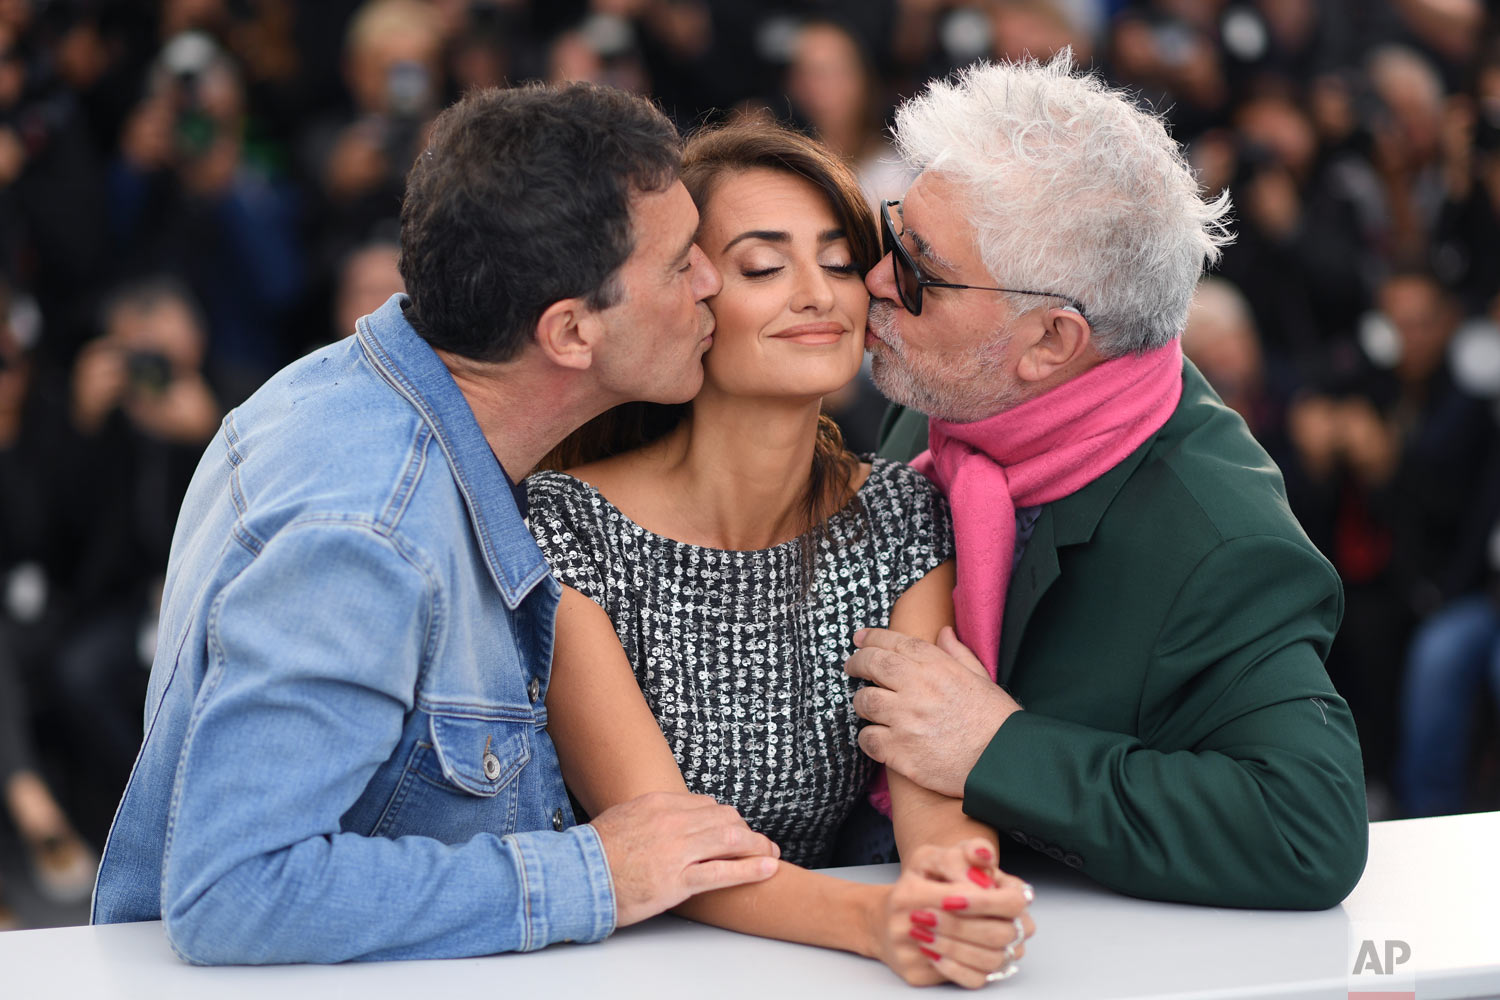 Actors Antonio Banderas, from left, Penelope Cruz and director Pedro Almodovar pose for photographers at the photo call for the film 'Pain and Glory' at the 72nd international film festival, Cannes, southern France, May 18, 2019. (Photo by Arthur Mola/Invision/AP)